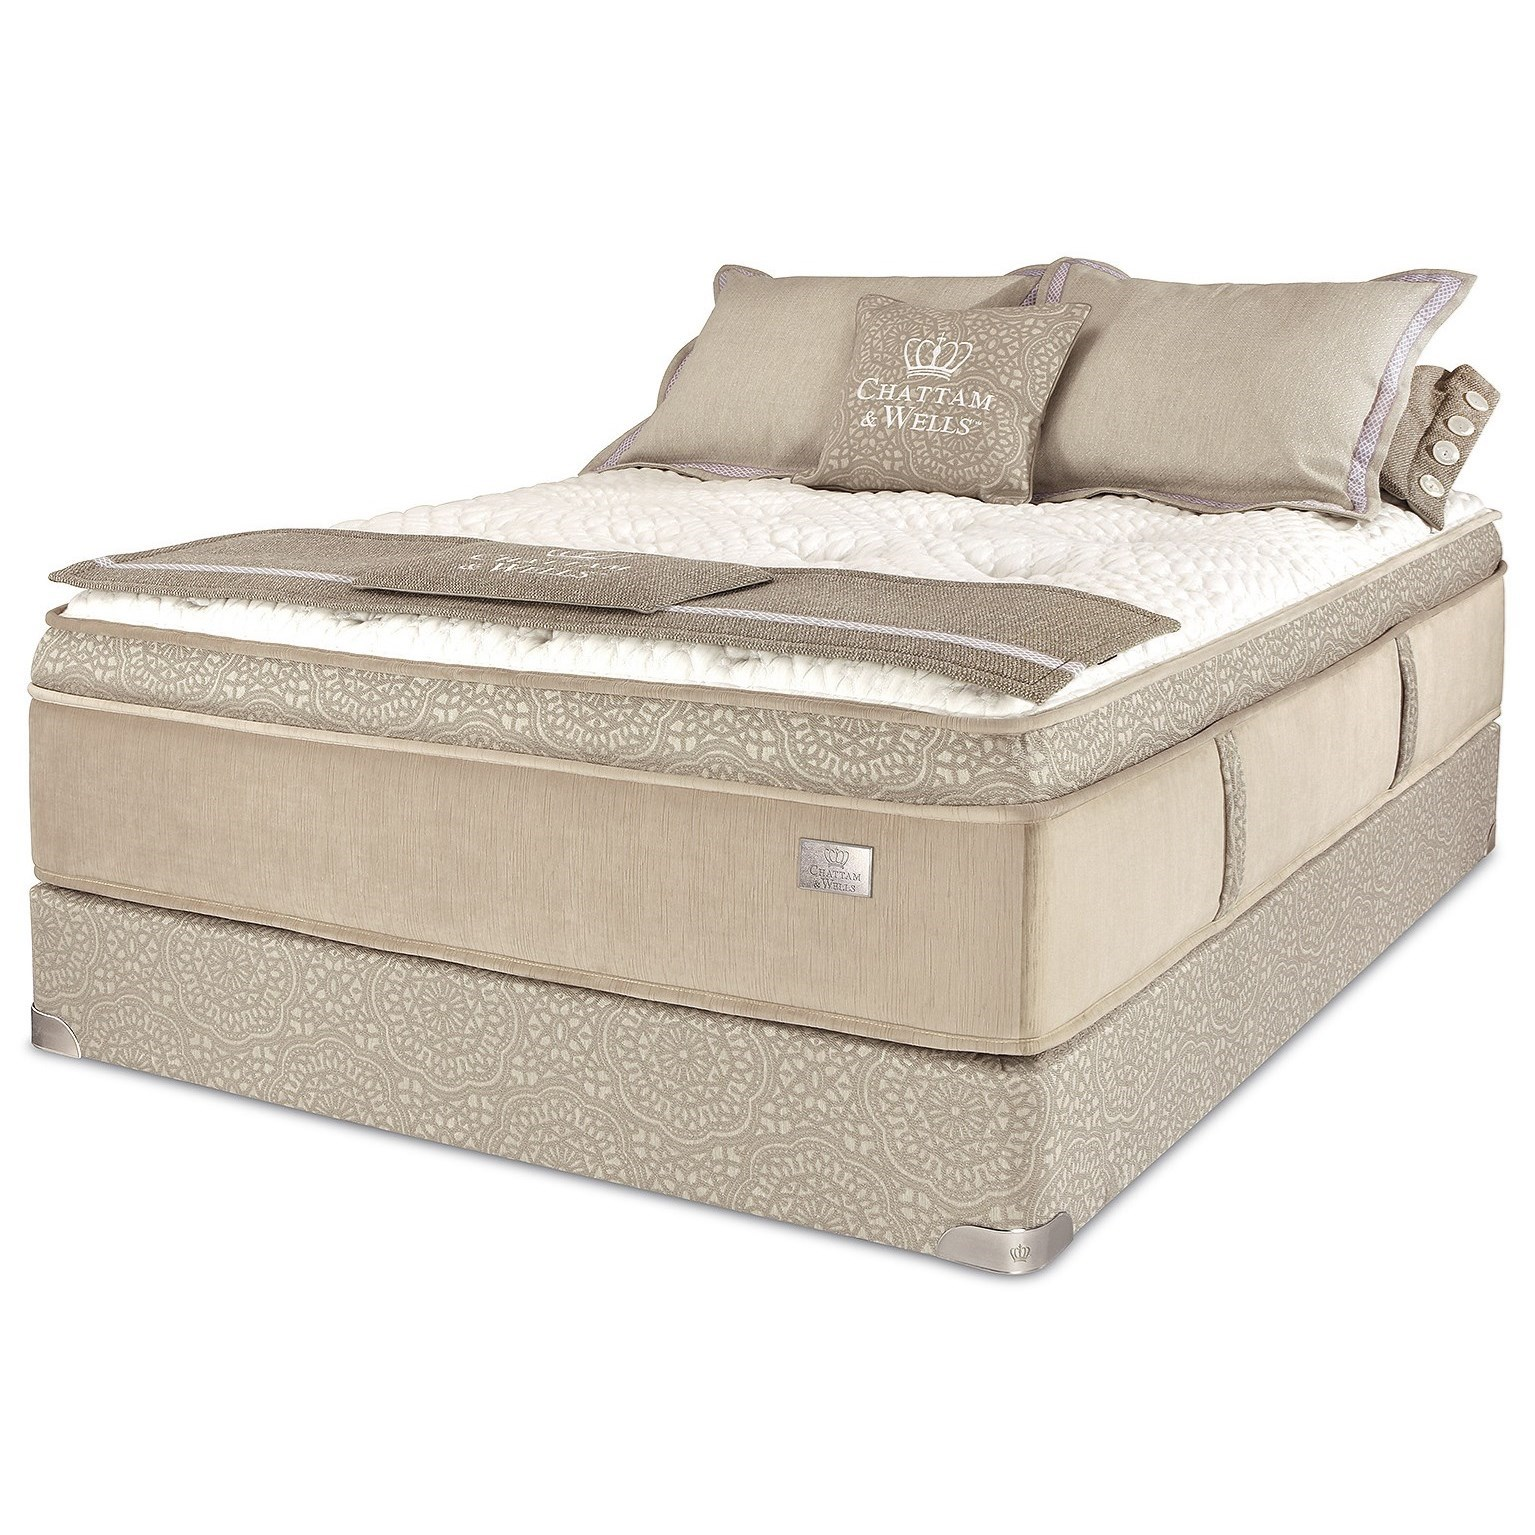 """Imperial Pillow Top Full 15"""" Pillow Top Latex Mattress Set by Spring Air at Steger's Furniture"""